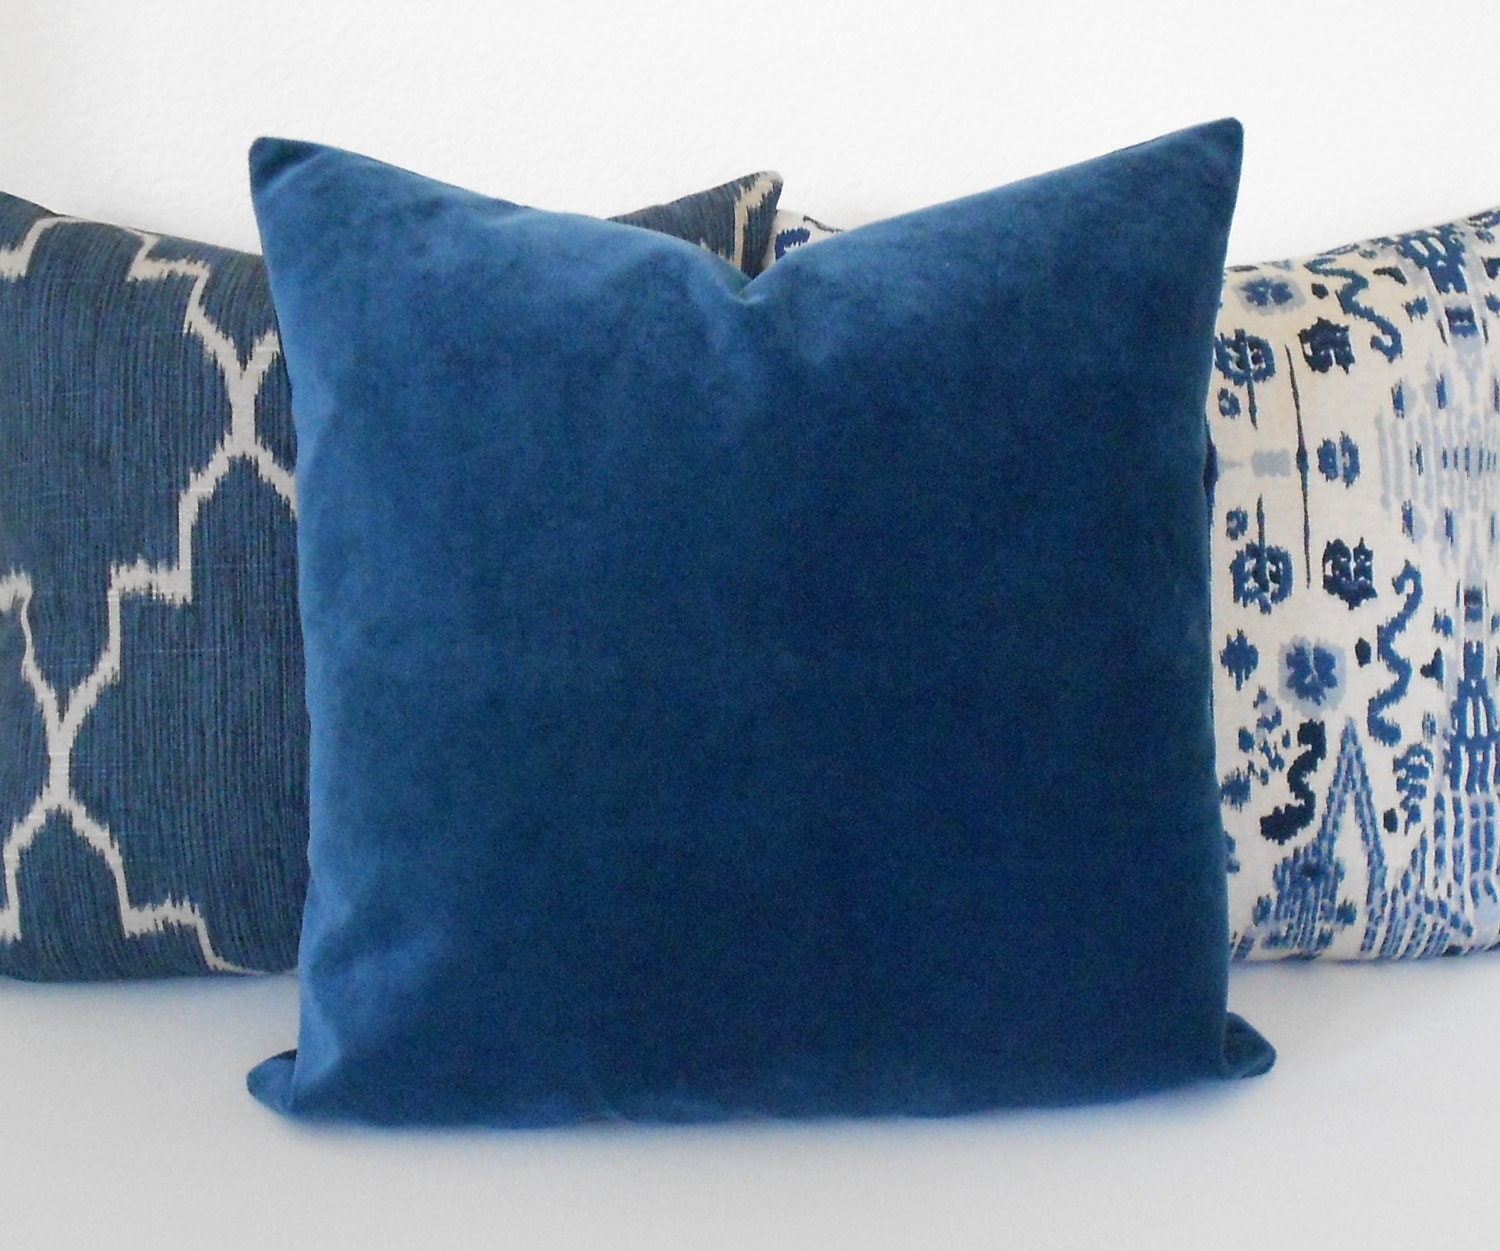 throw couch pillows covers light tan set black toss gray yellow blue navy accent wonderful and lumbar for pink pillow decorative